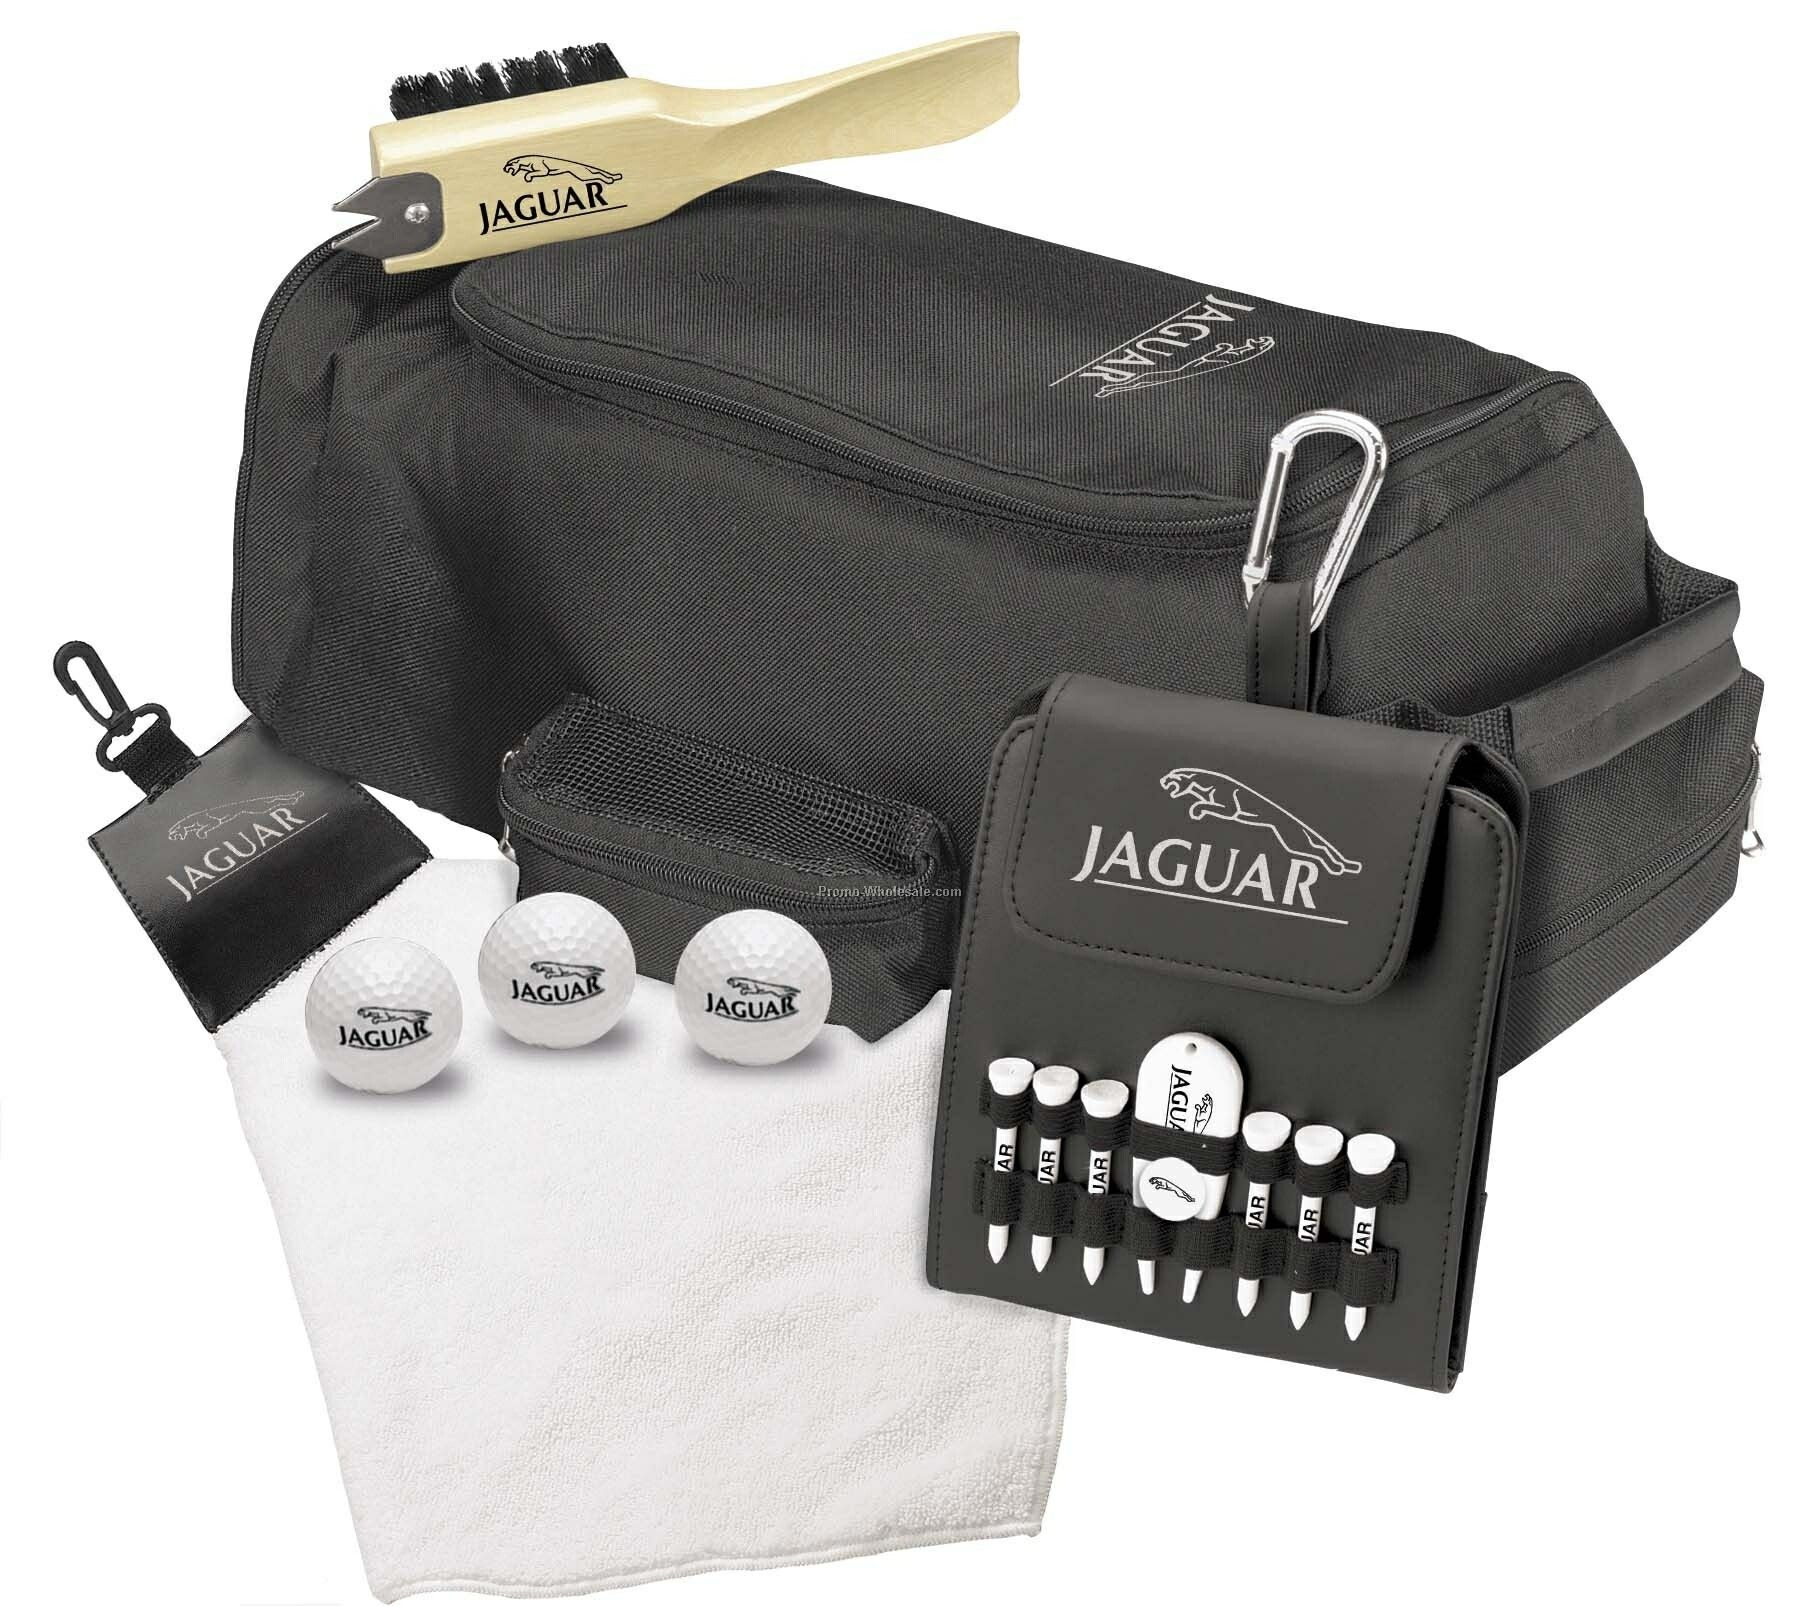 Tee Off Club House Travel Kit W/3 Titleist Nxt Extreme Golf Balls